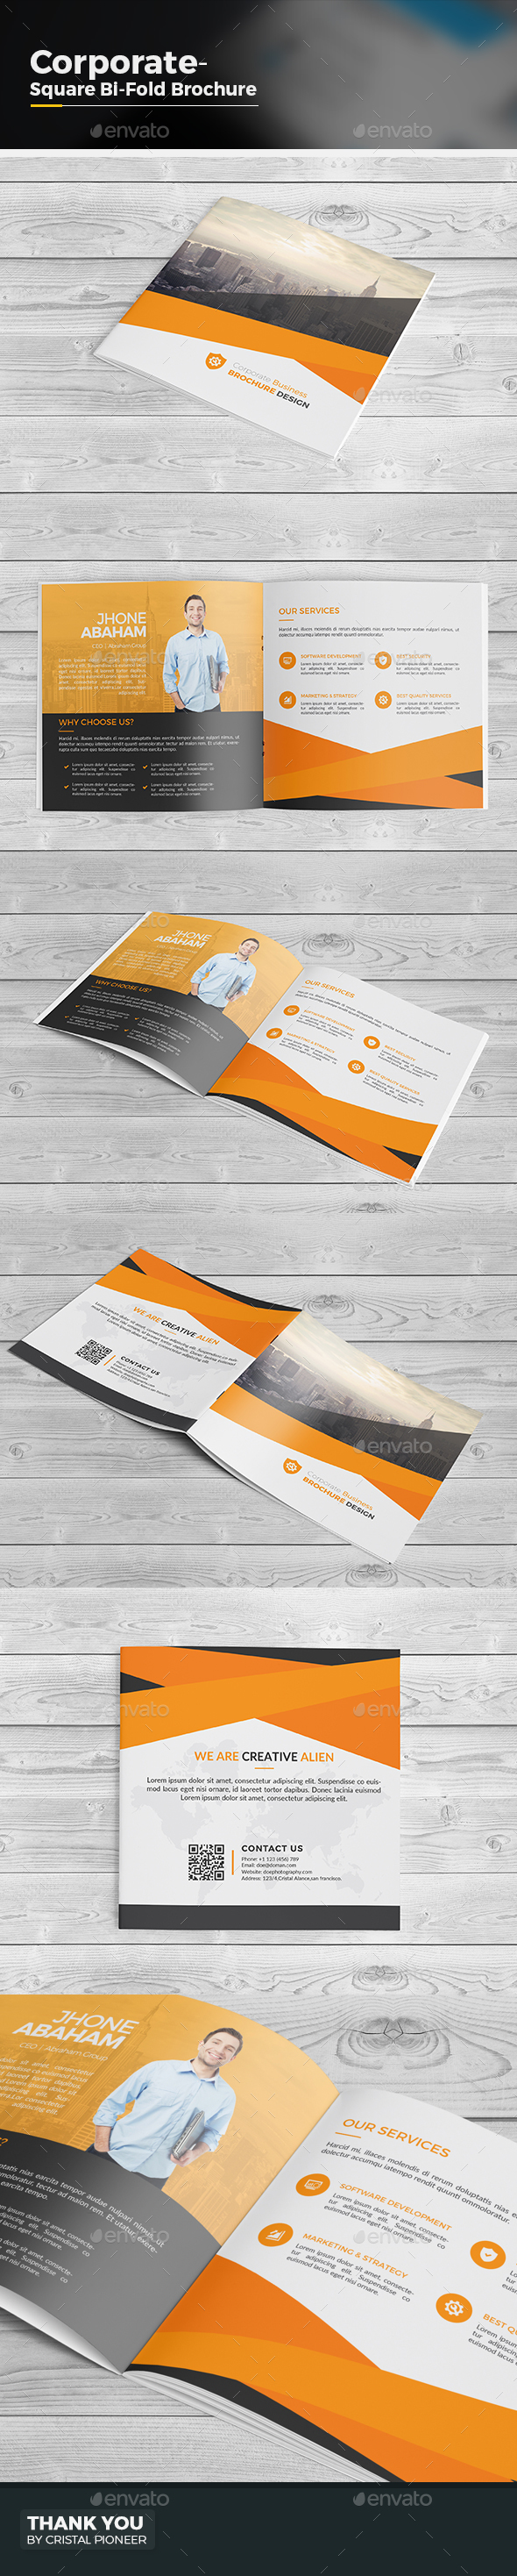 BiFold Square Brochure - Corporate Brochures